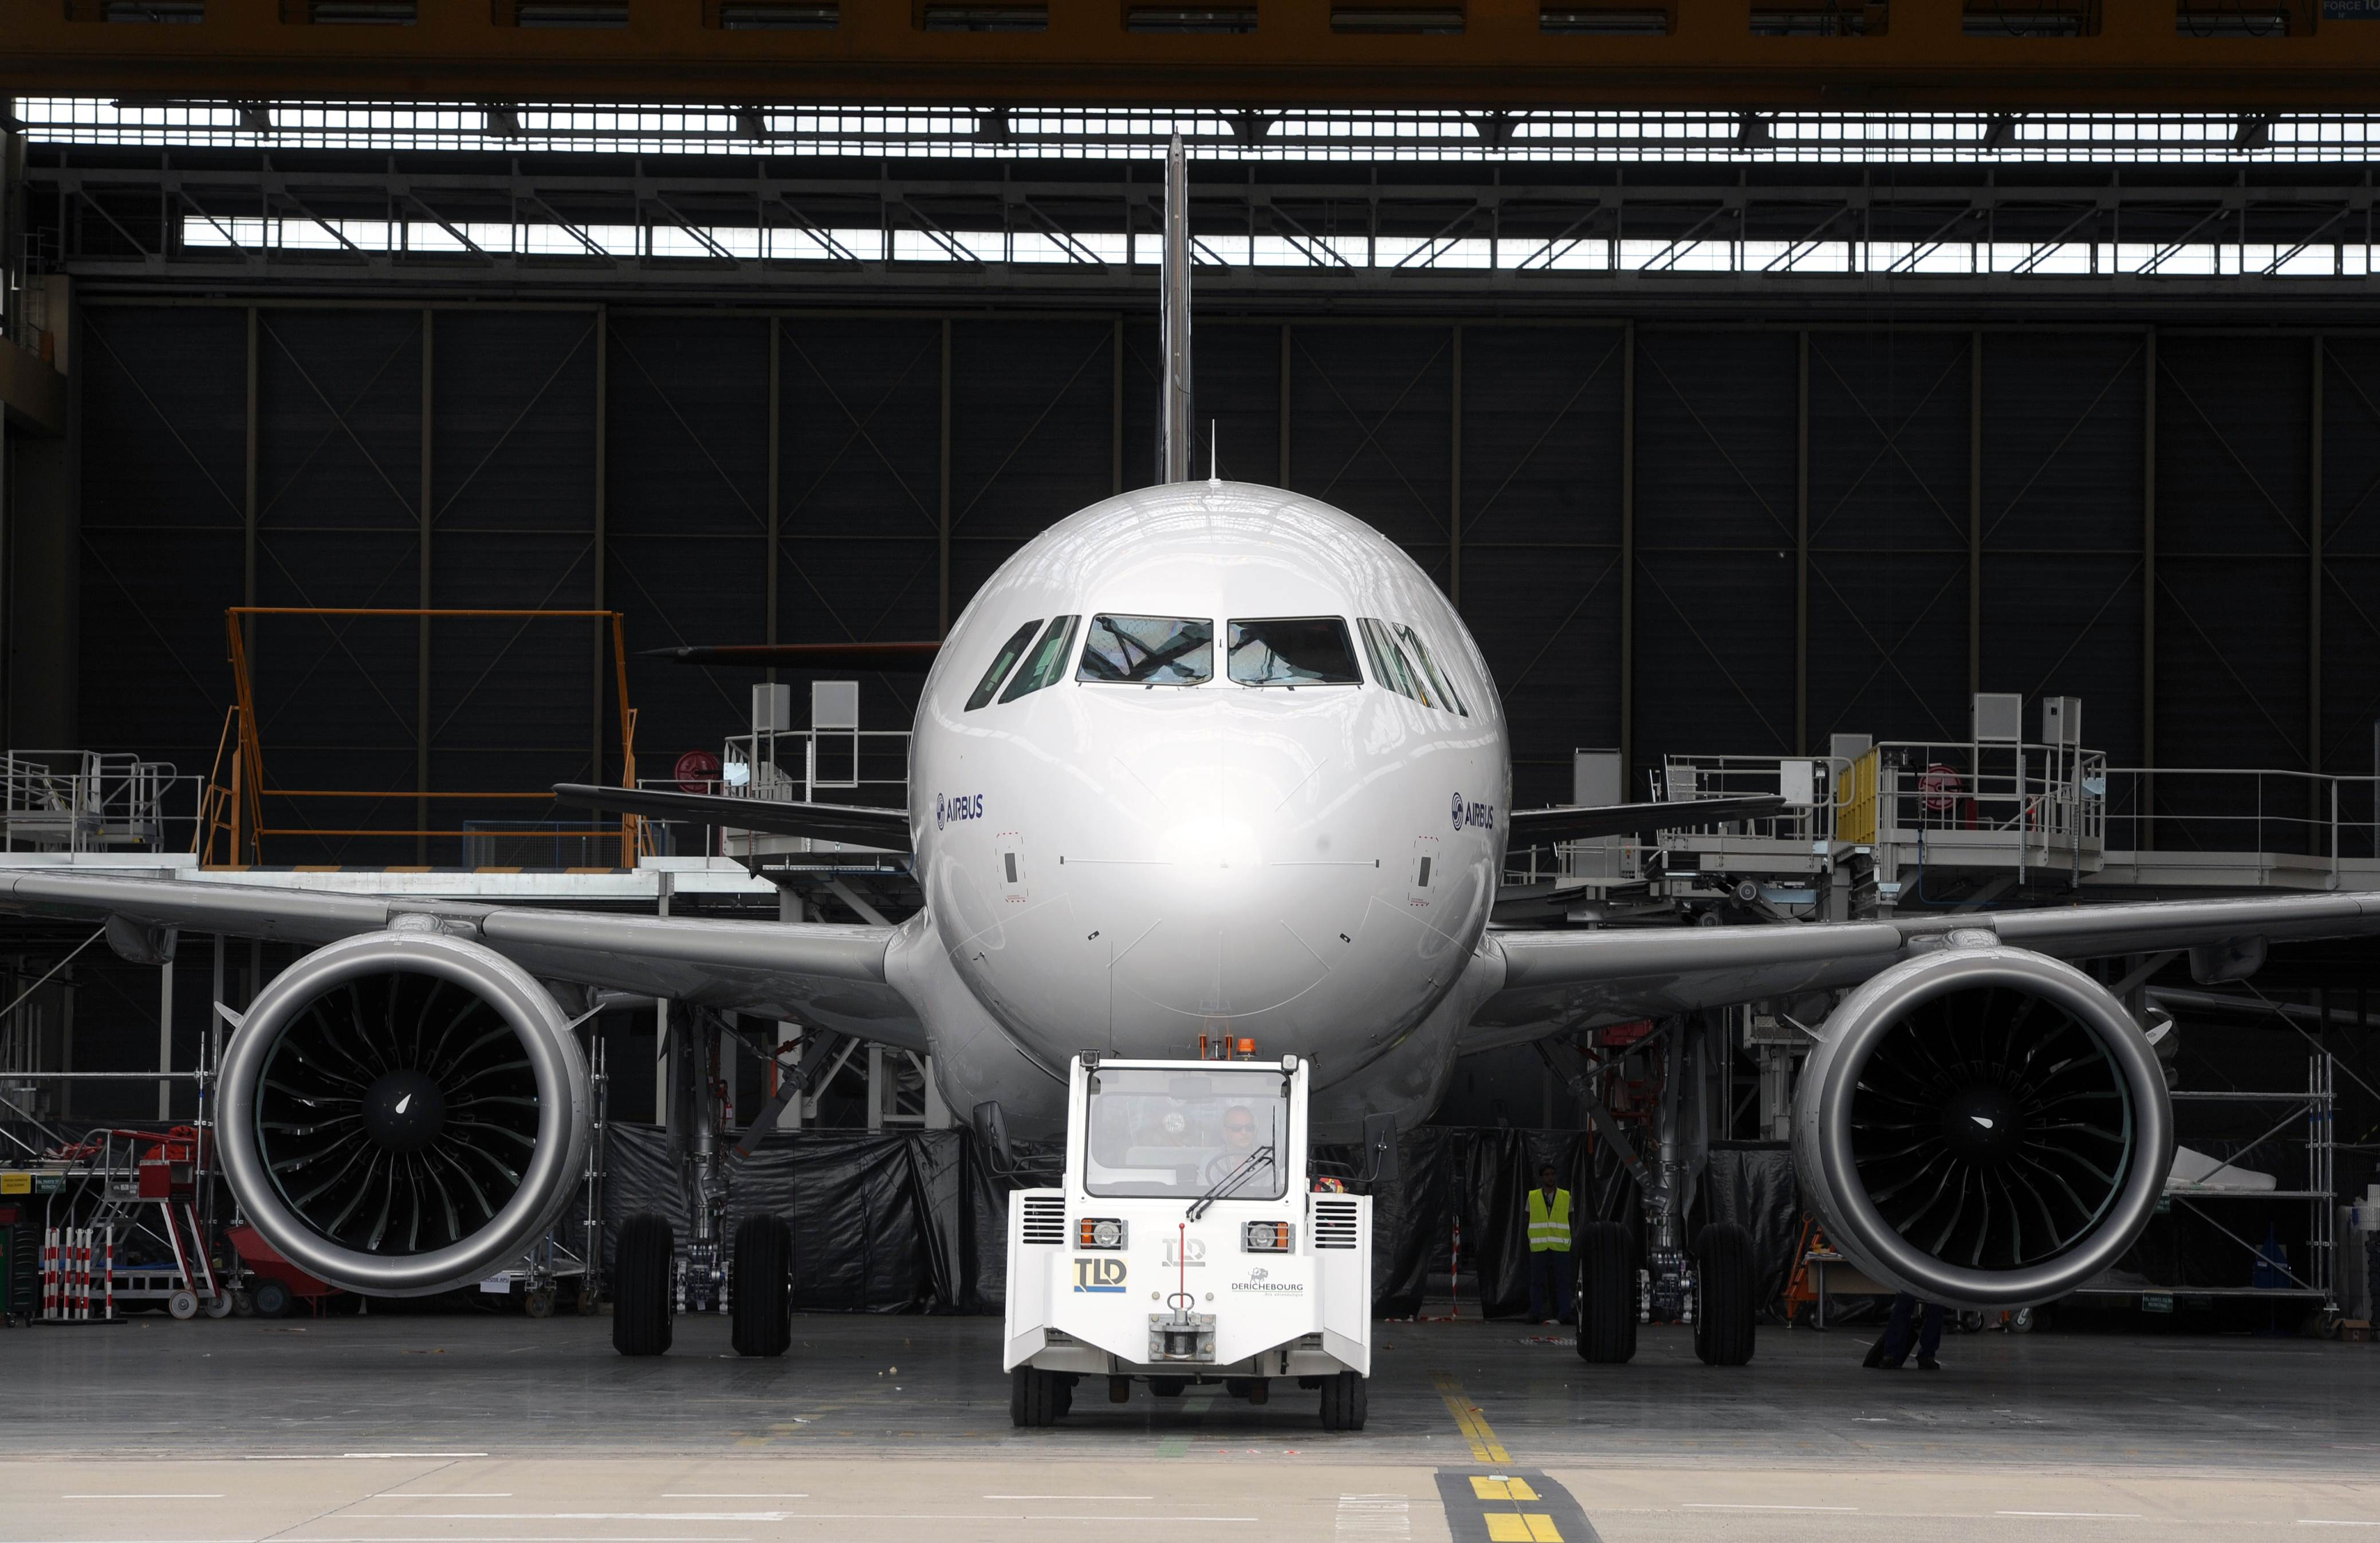 airbus to avoid compulsory layoffs